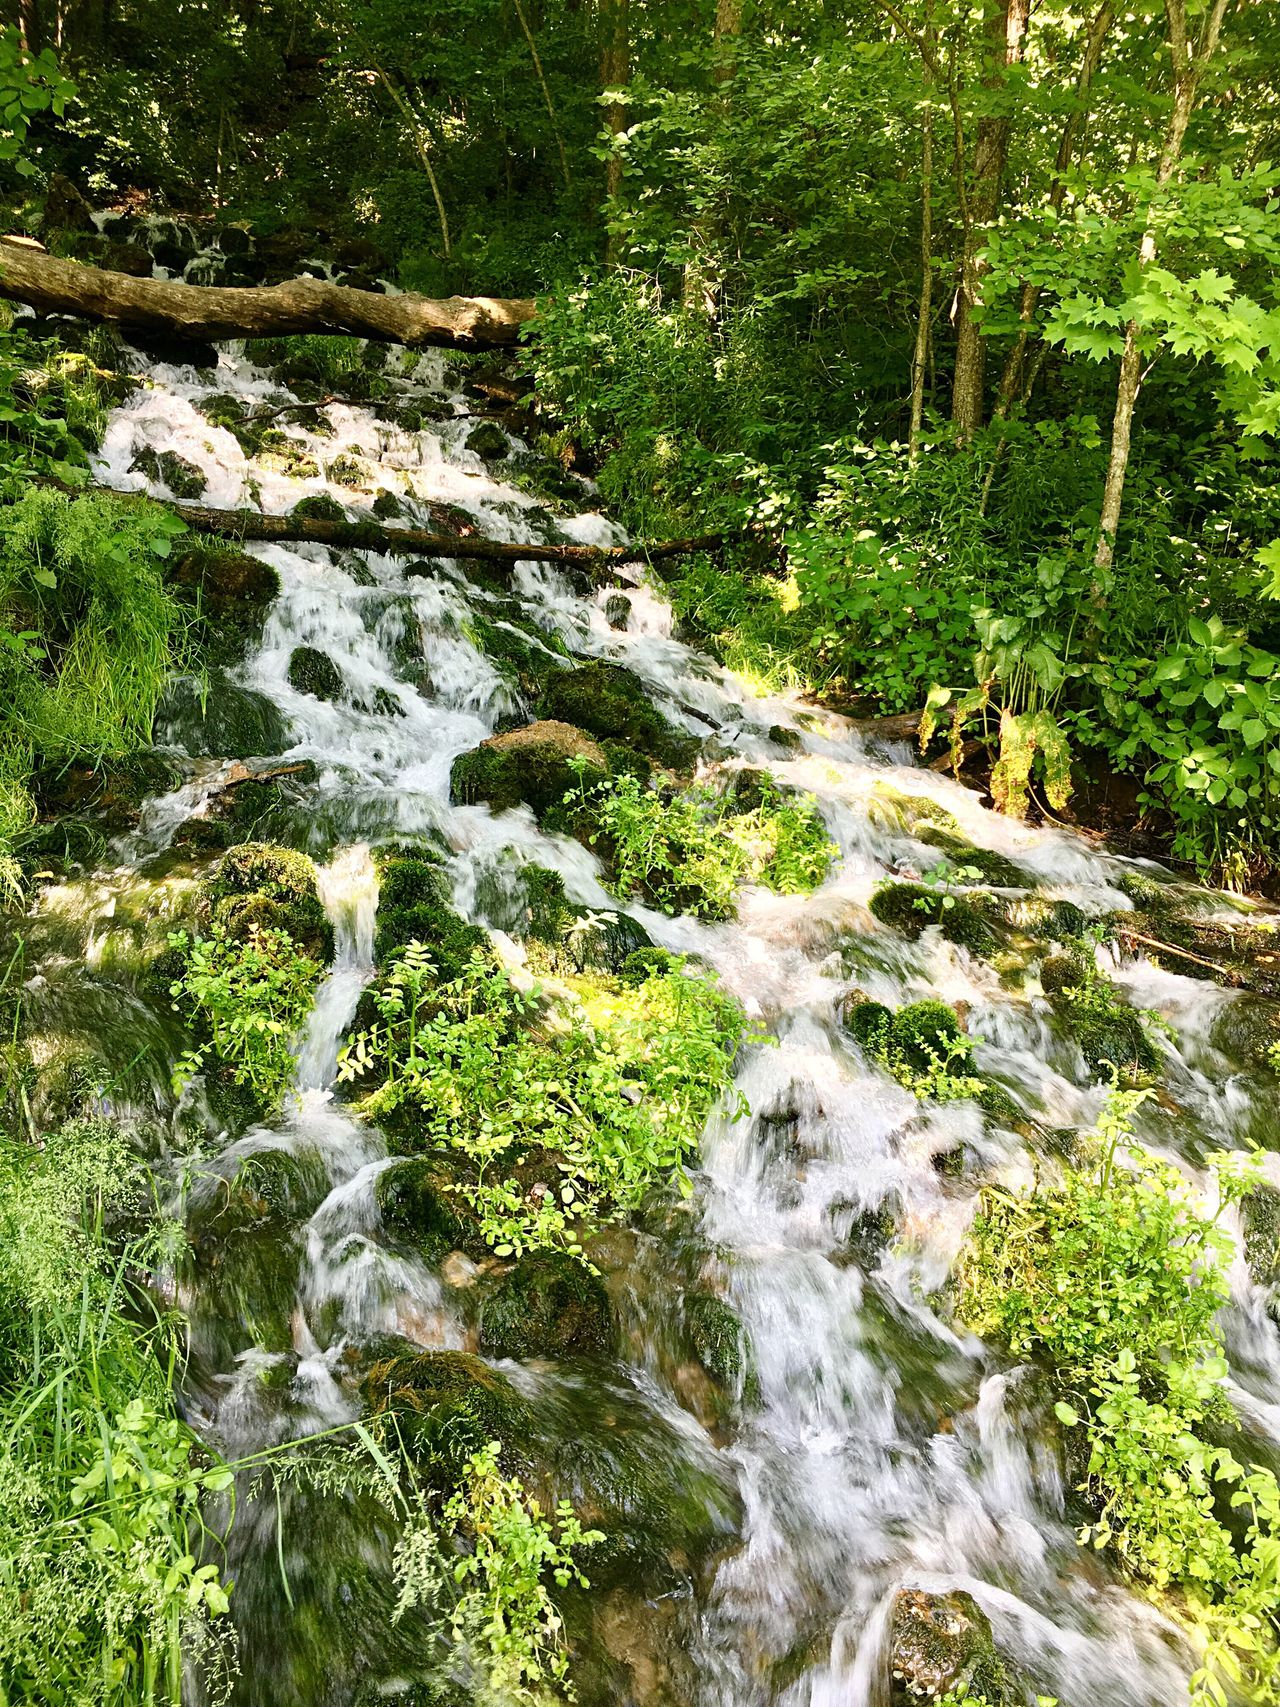 Big Springs Flowing Water Waterfall Water Nature Beauty In Nature Moss Natural Spring Water Motion Green Color Freshness Geodes Geode Naturalspring Waterfalls Tranquility Rocks Rocks And Water Natural Spring Flowing Water Tranquil Scene No People The Great Outdoors - 2017 EyeEm Awards Out Of The Box